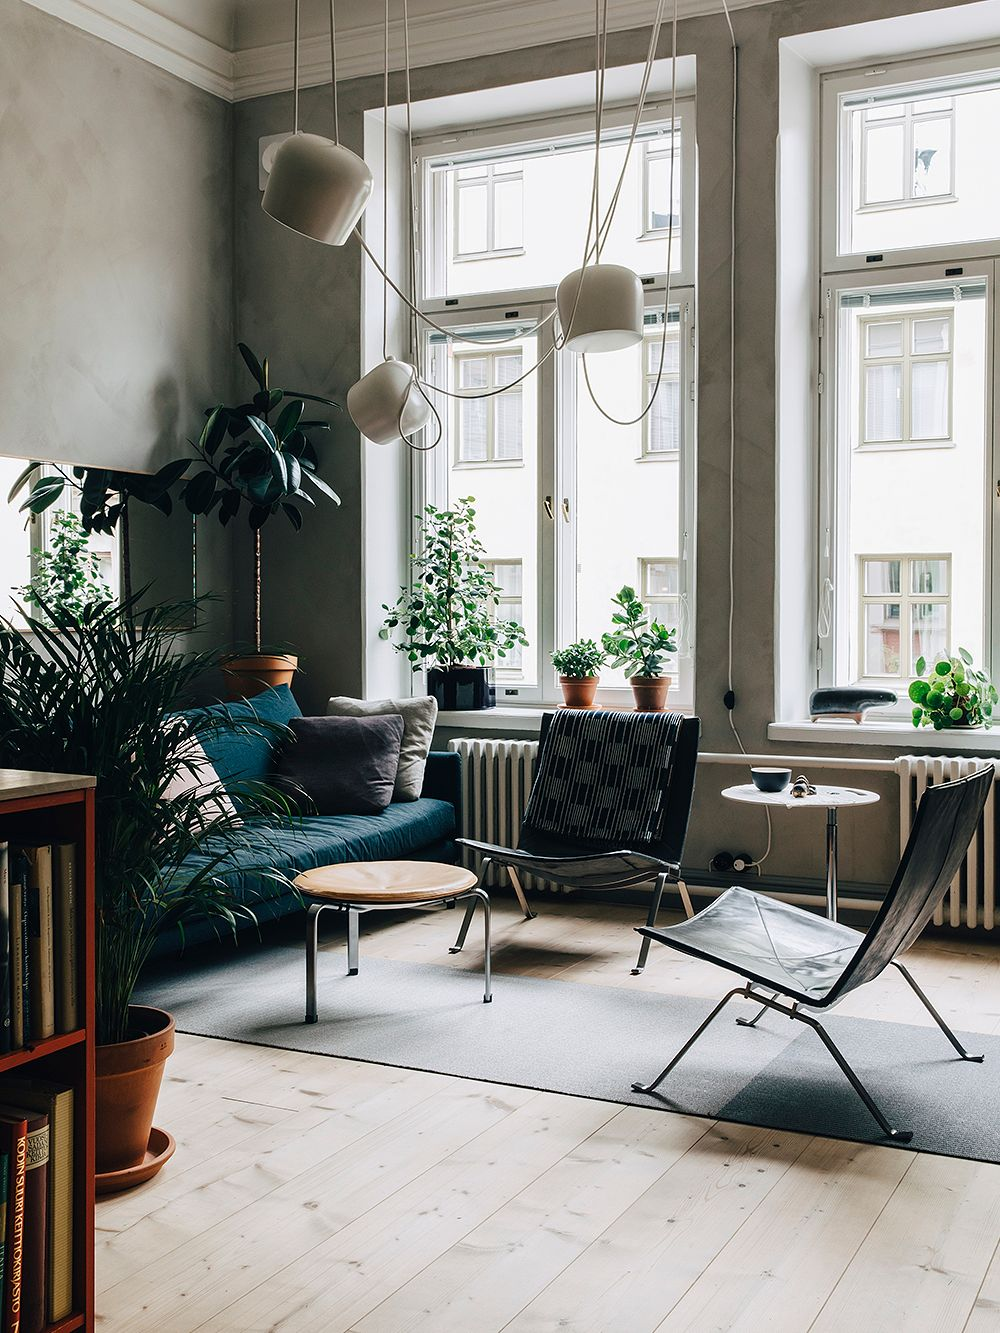 A brilliant home in Helsinki